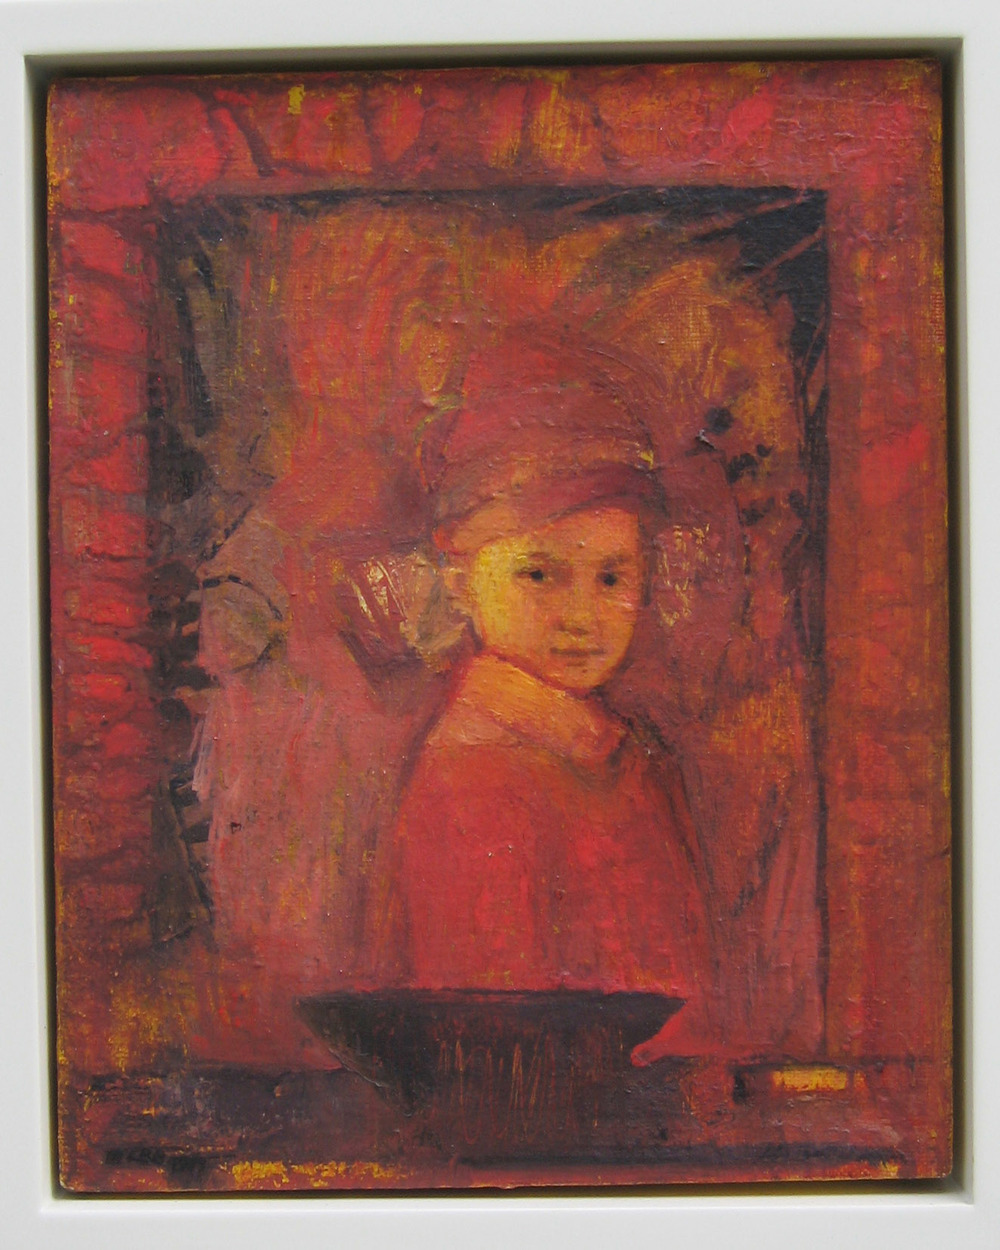 5be(0) - The Looking Glass, iul on canvas, wood, 17x15 in. 2001.jpg